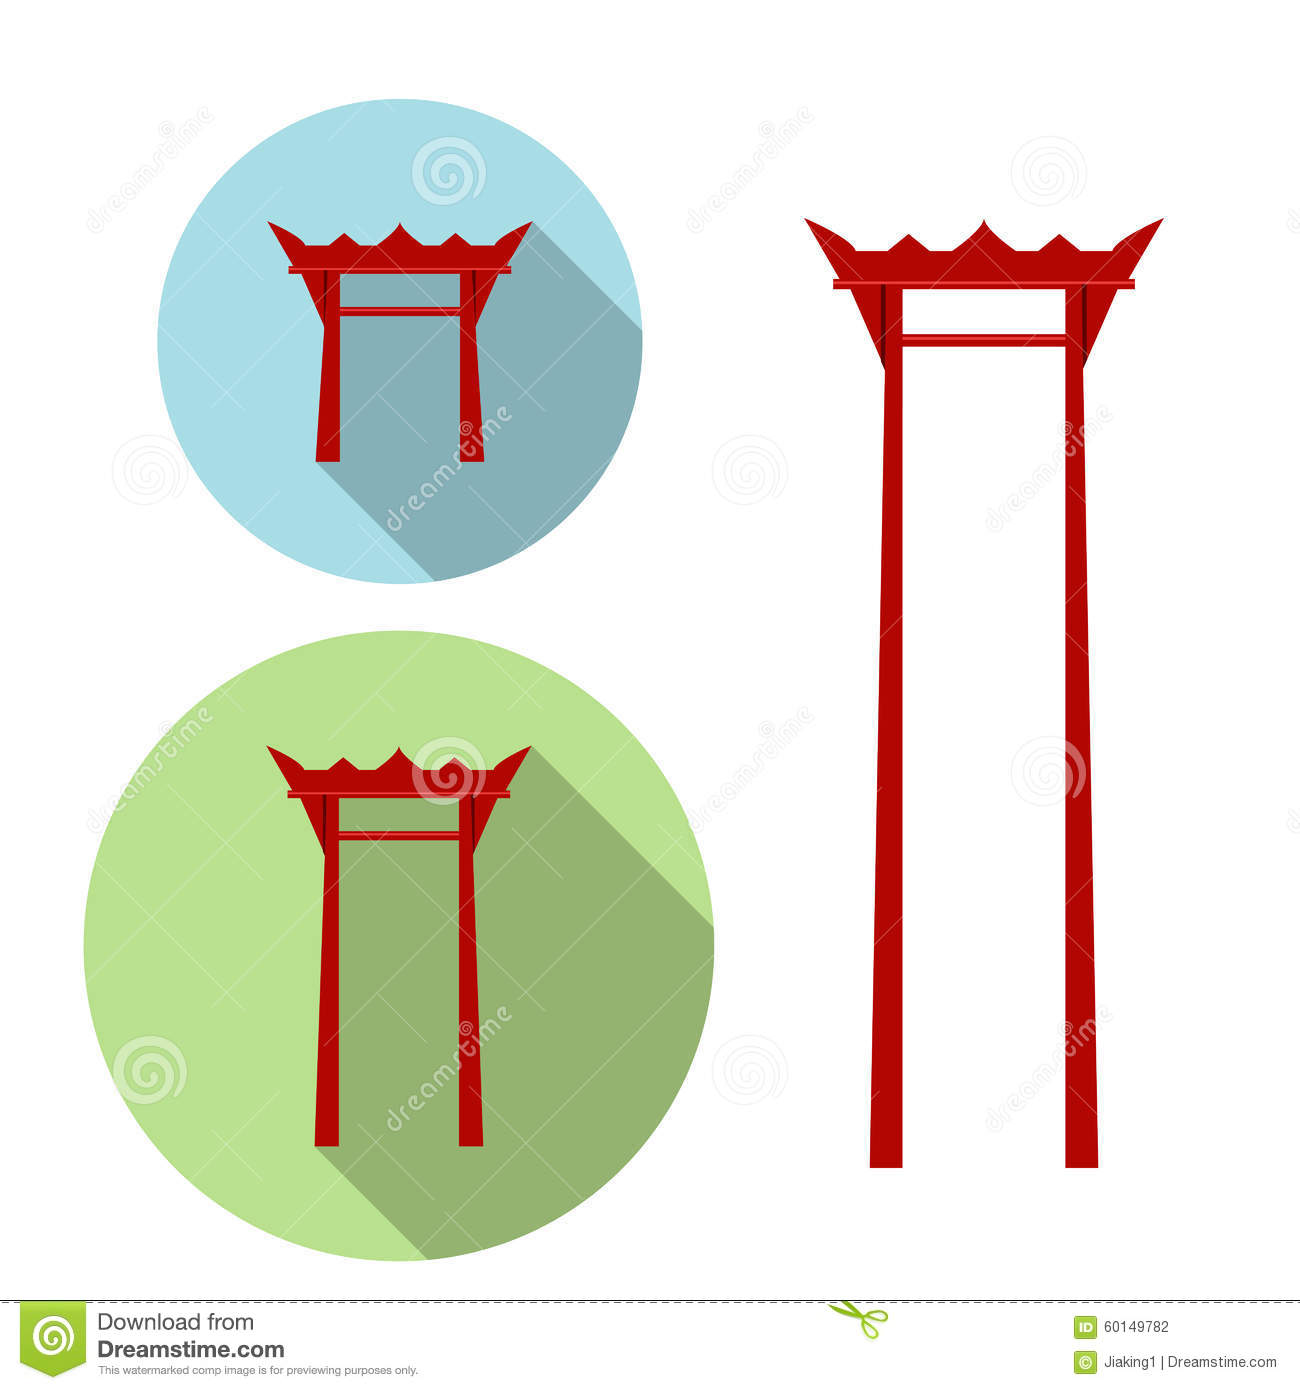 Giant Swing, Torii Gate Icon Stock Vector - Image: 60149782